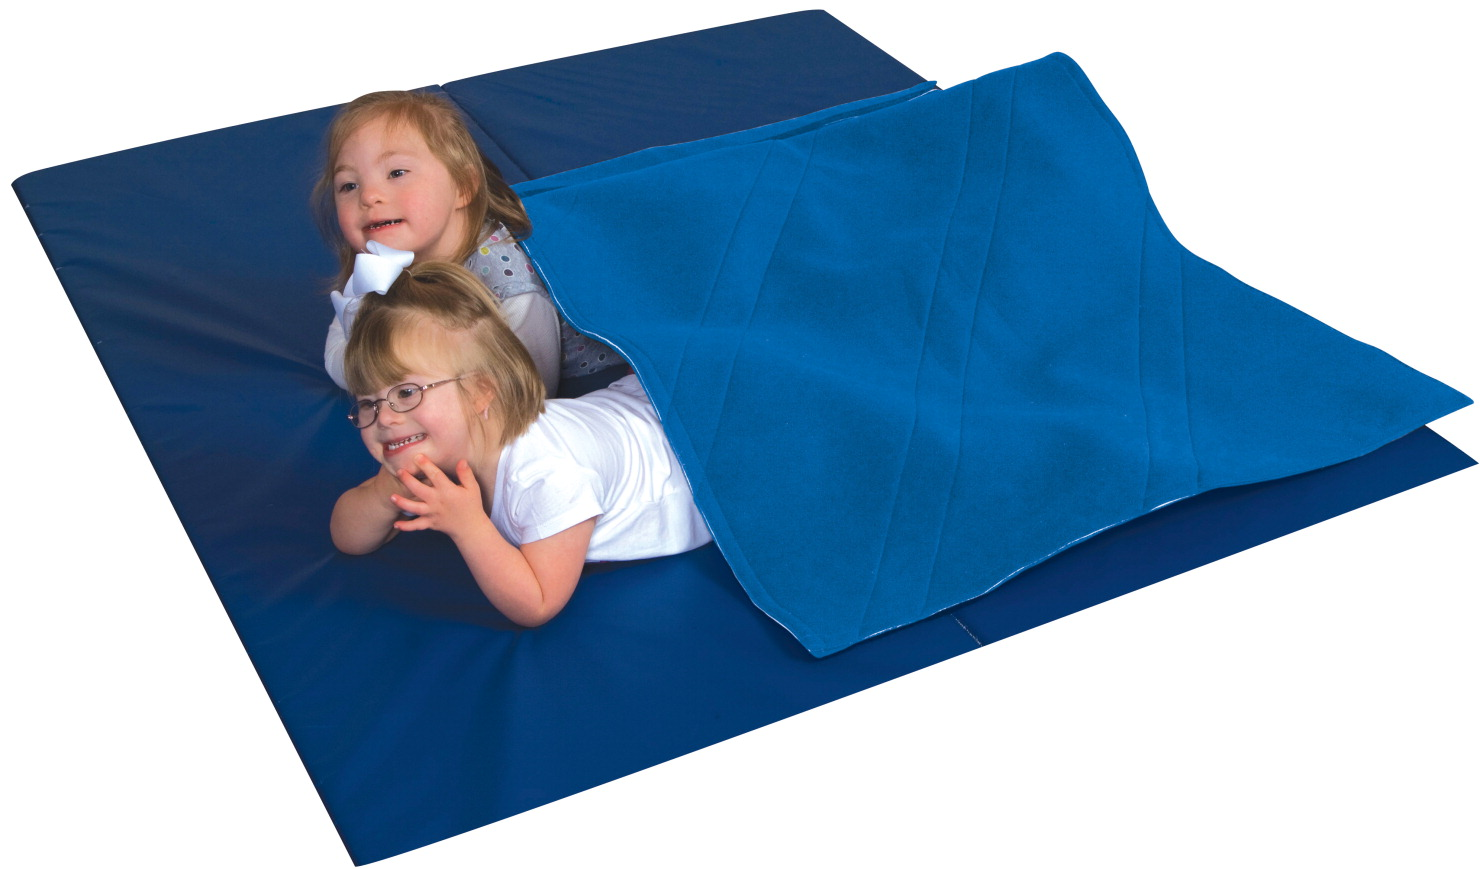 Abilitations Small Weighted Blanket Without Weights, 3 x 4 ft, Neoprene/Polyester, Blue